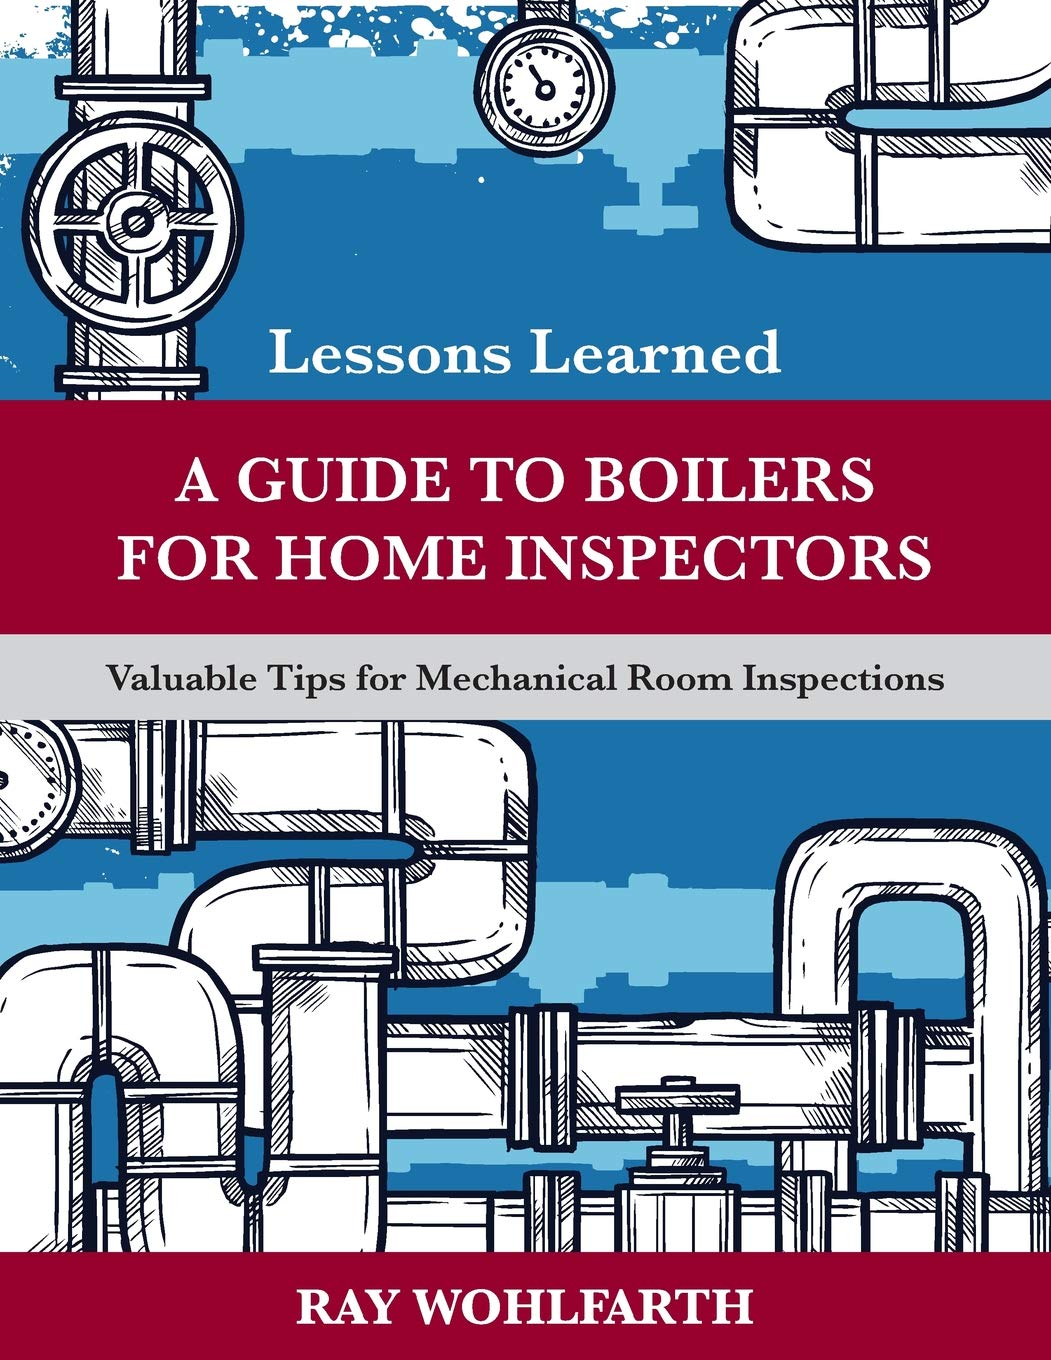 Download Lessons Learned: A Guide to Boilers for Home Inspectors: Valuable Tips for Mechanical Room Inspections (Volume 6) pdf